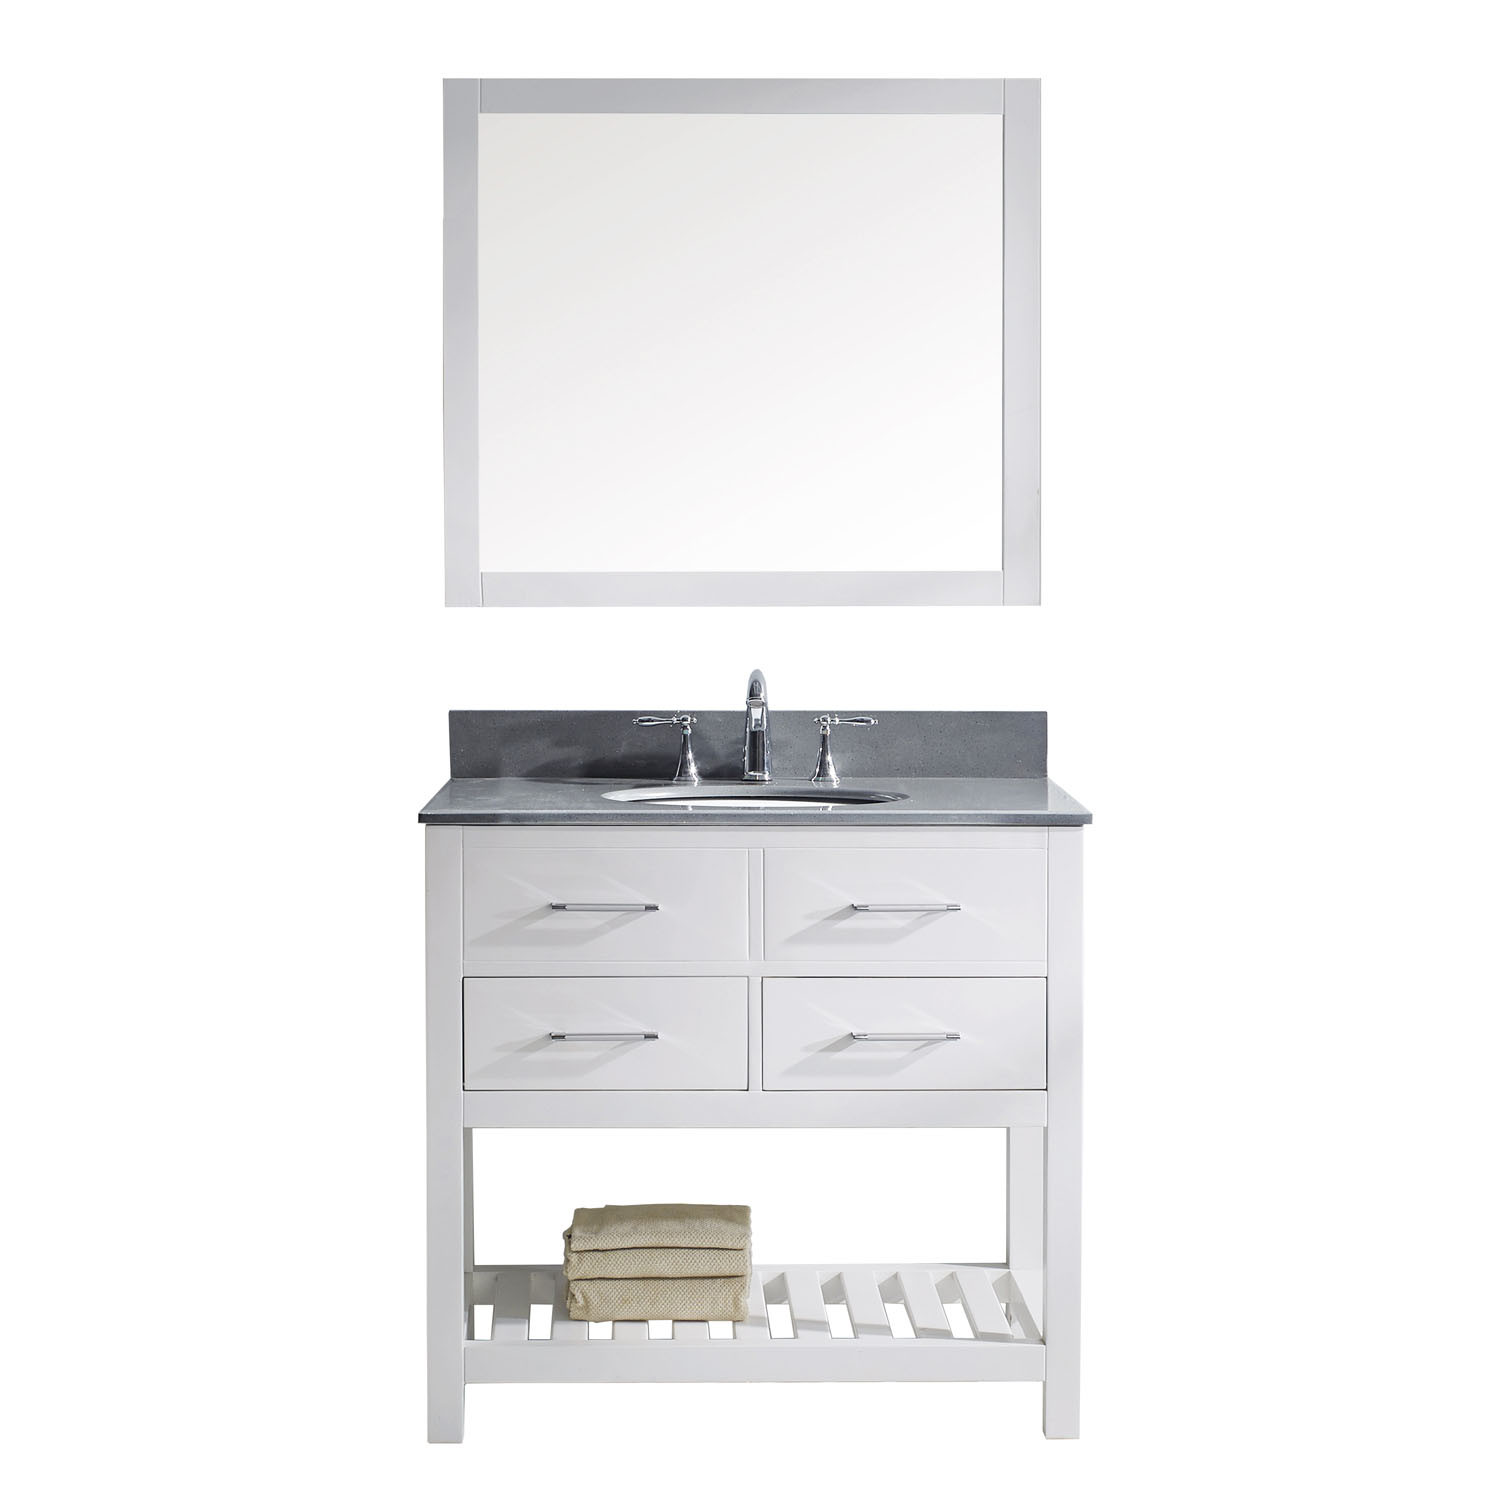 Virtu MS-2236-GQRO-WH-001 Caroline Estate 36 Inch Single Bathroom Vanity Set In White